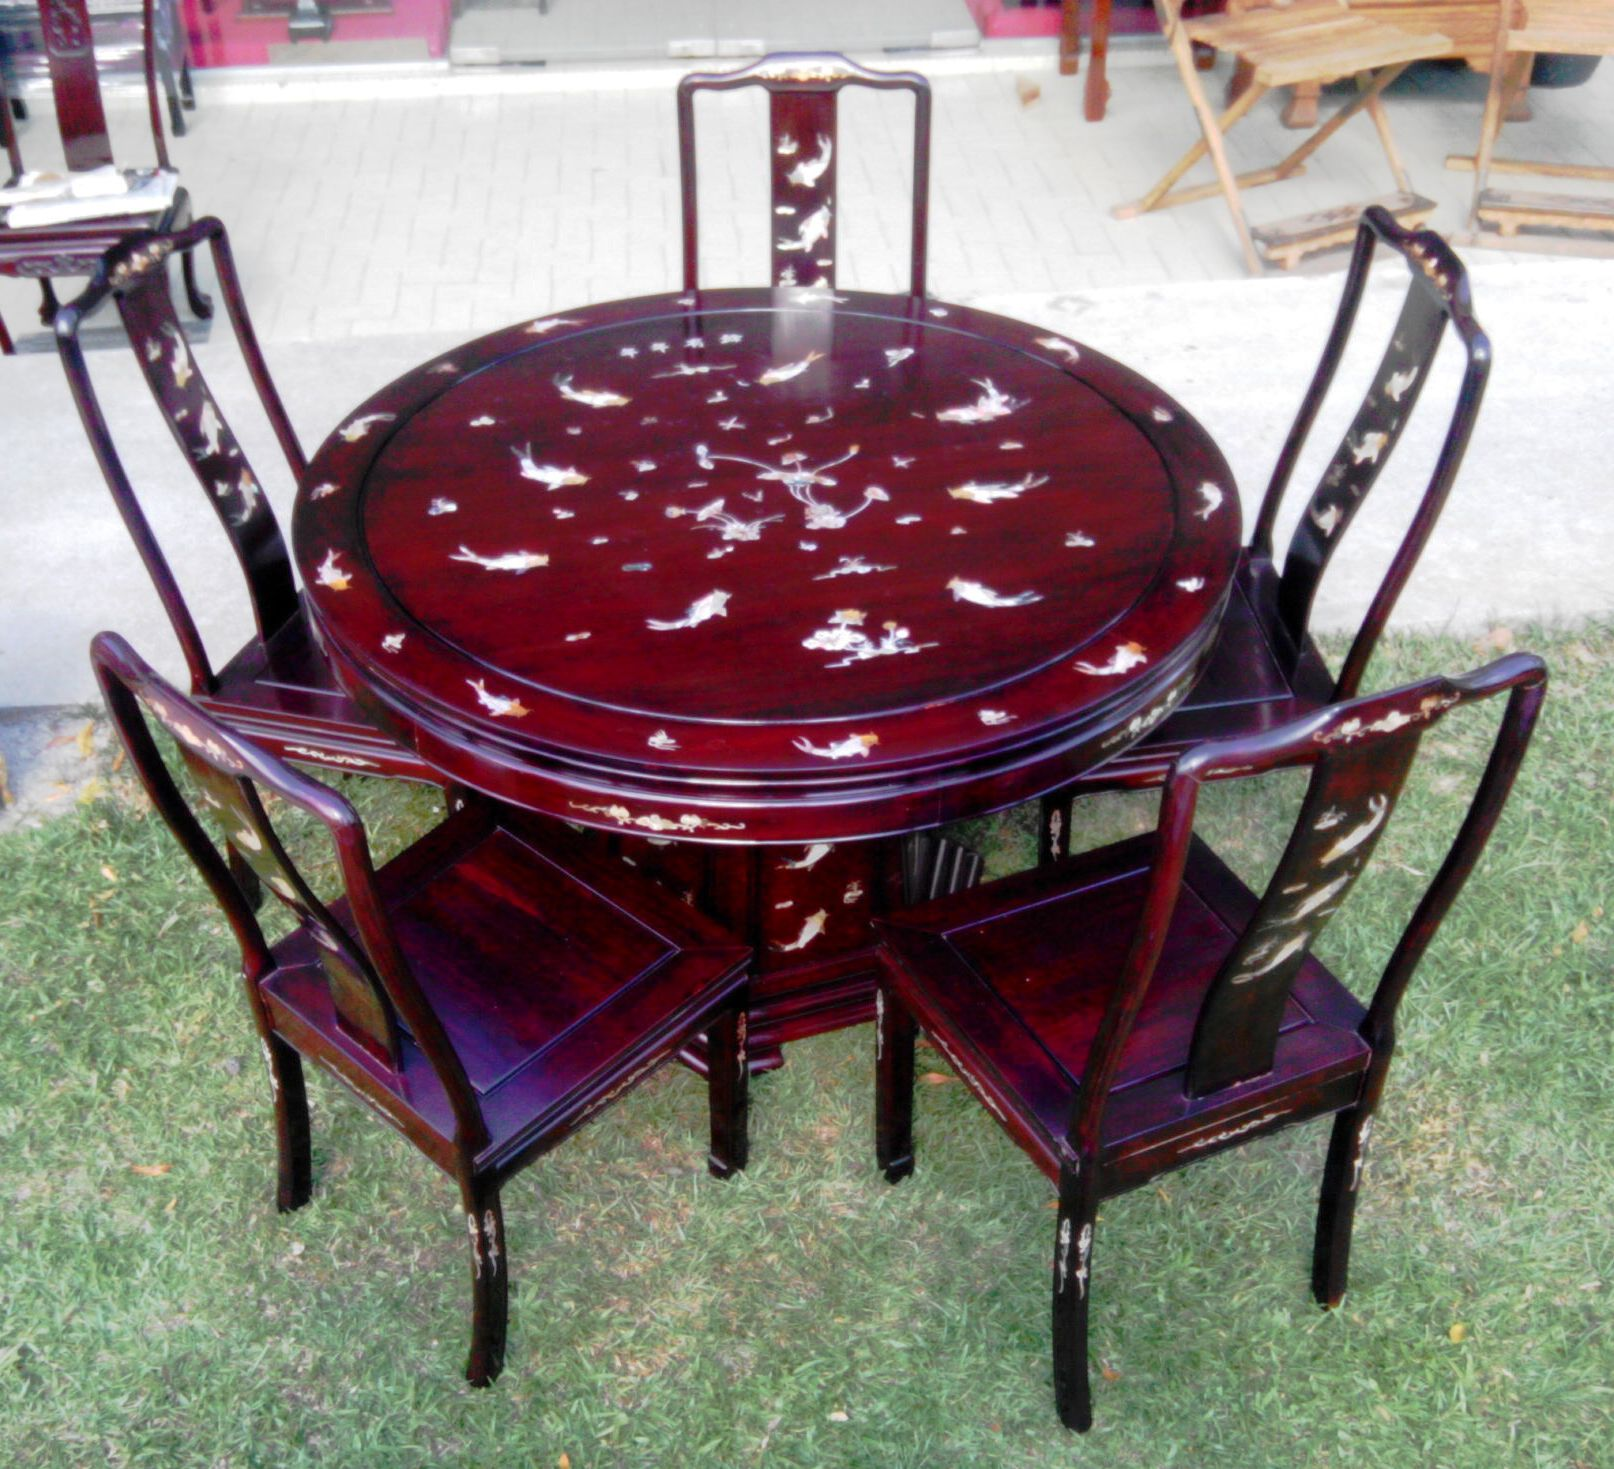 Used Rosewood Dining Set for Sale, Furniture on Carousell